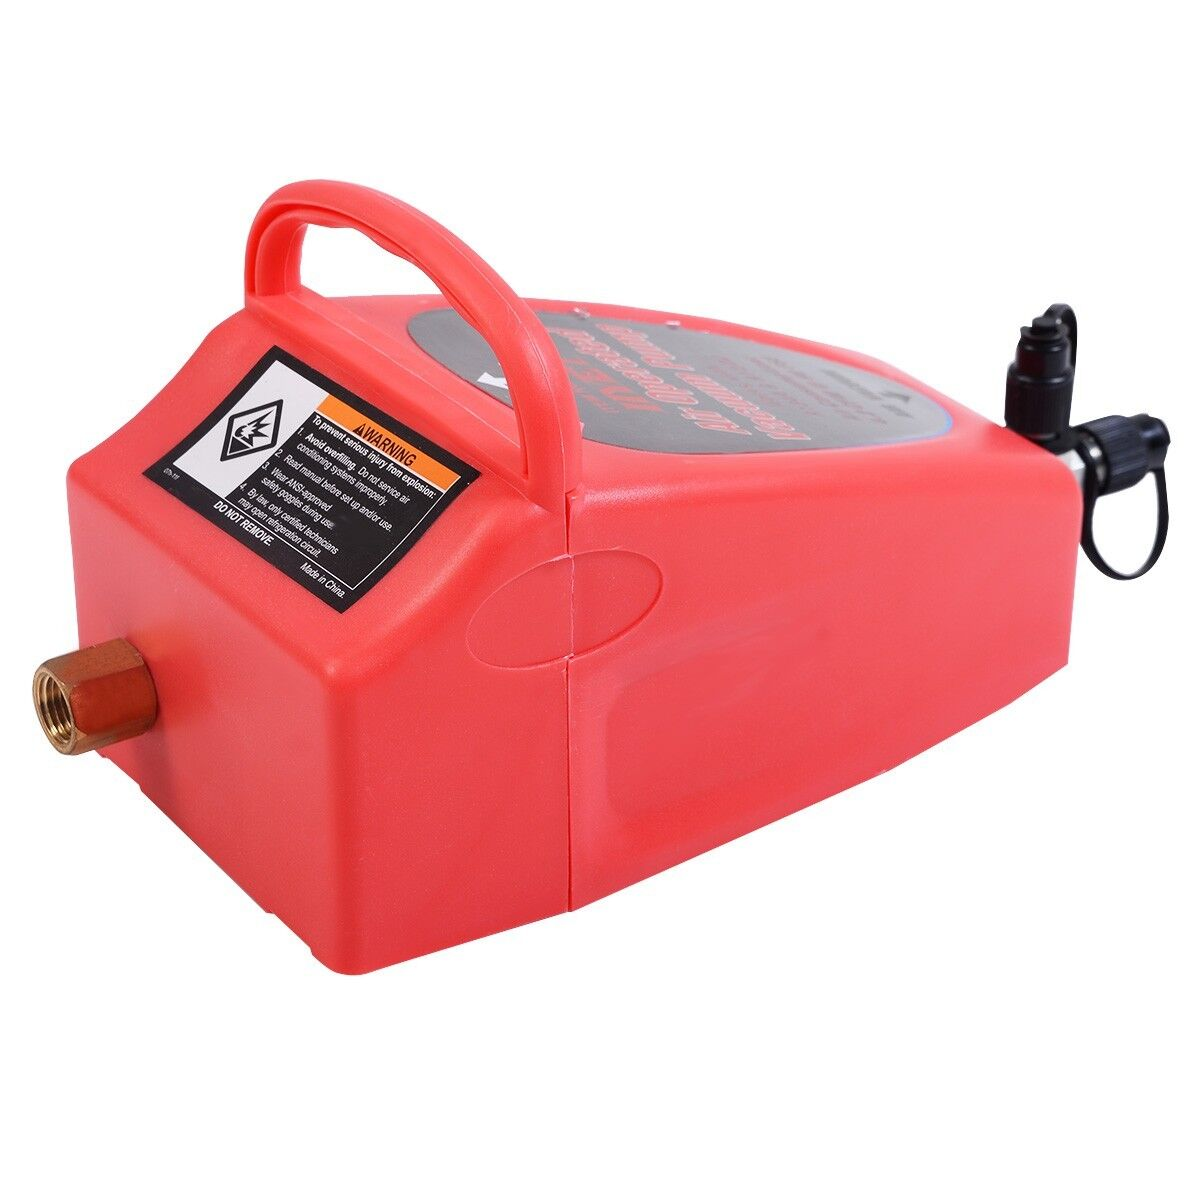 Auto Pneumatic 4.2CFM Air Operated Vacuum Pump A/C Air Conditioning System Tool 2